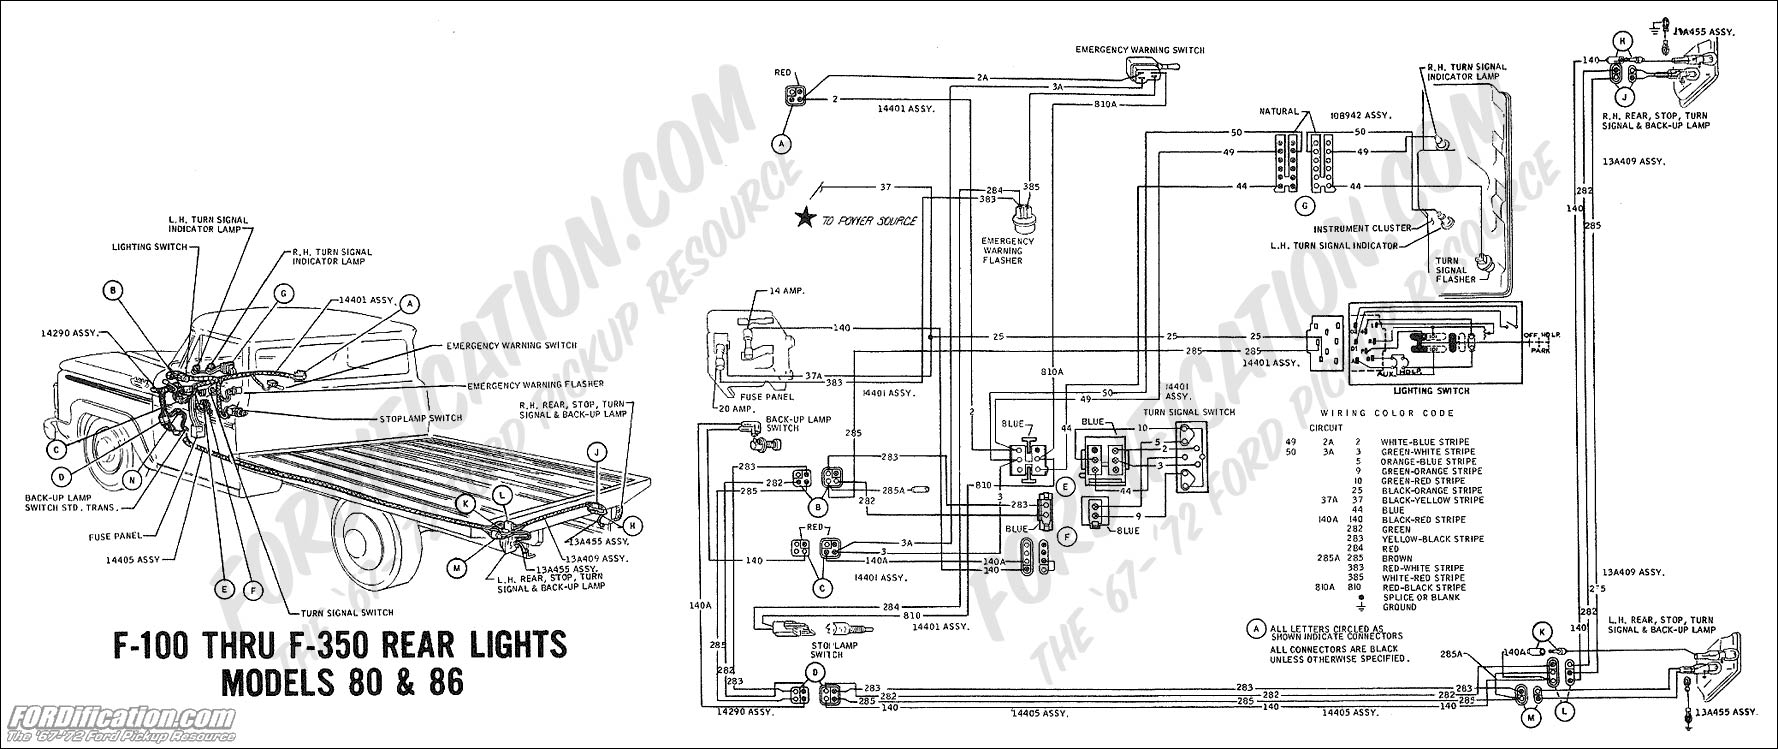 1970 f350 master diagram wiring diagram nowford truck technical drawings and schematics section h wiring 1970 ford truck 1970 f350 master diagram